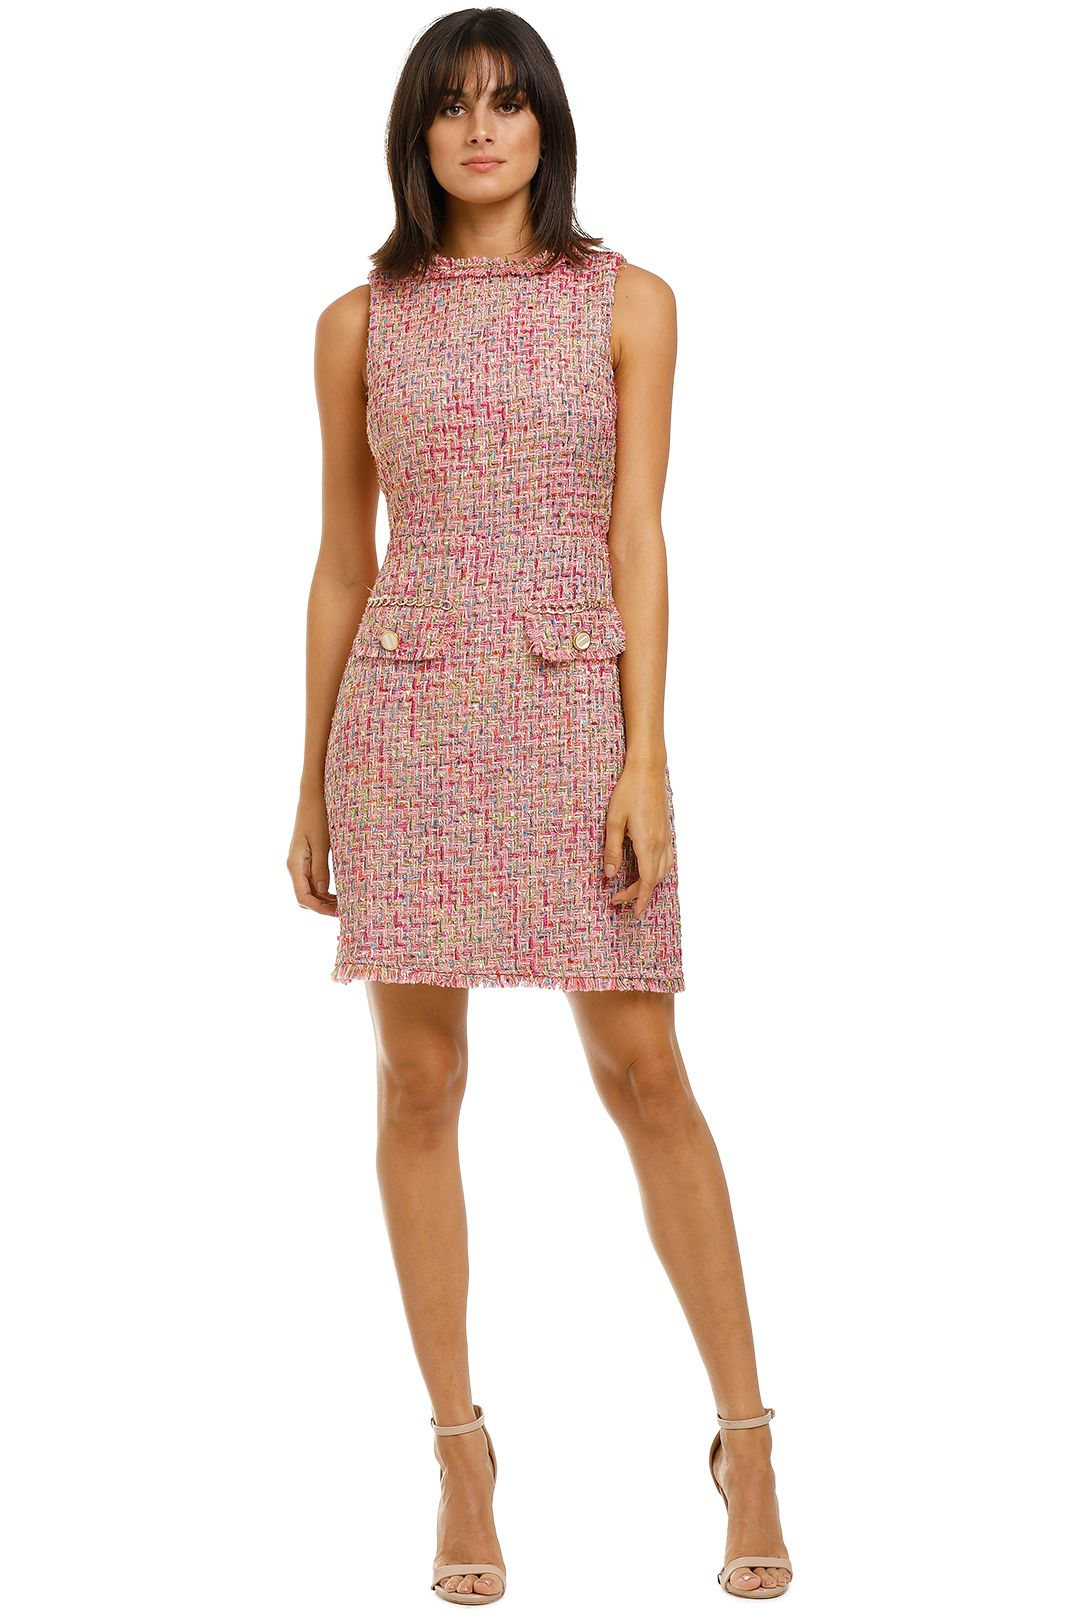 Alexia-Admor-Klara-Tweed-Dress-Pink-Front